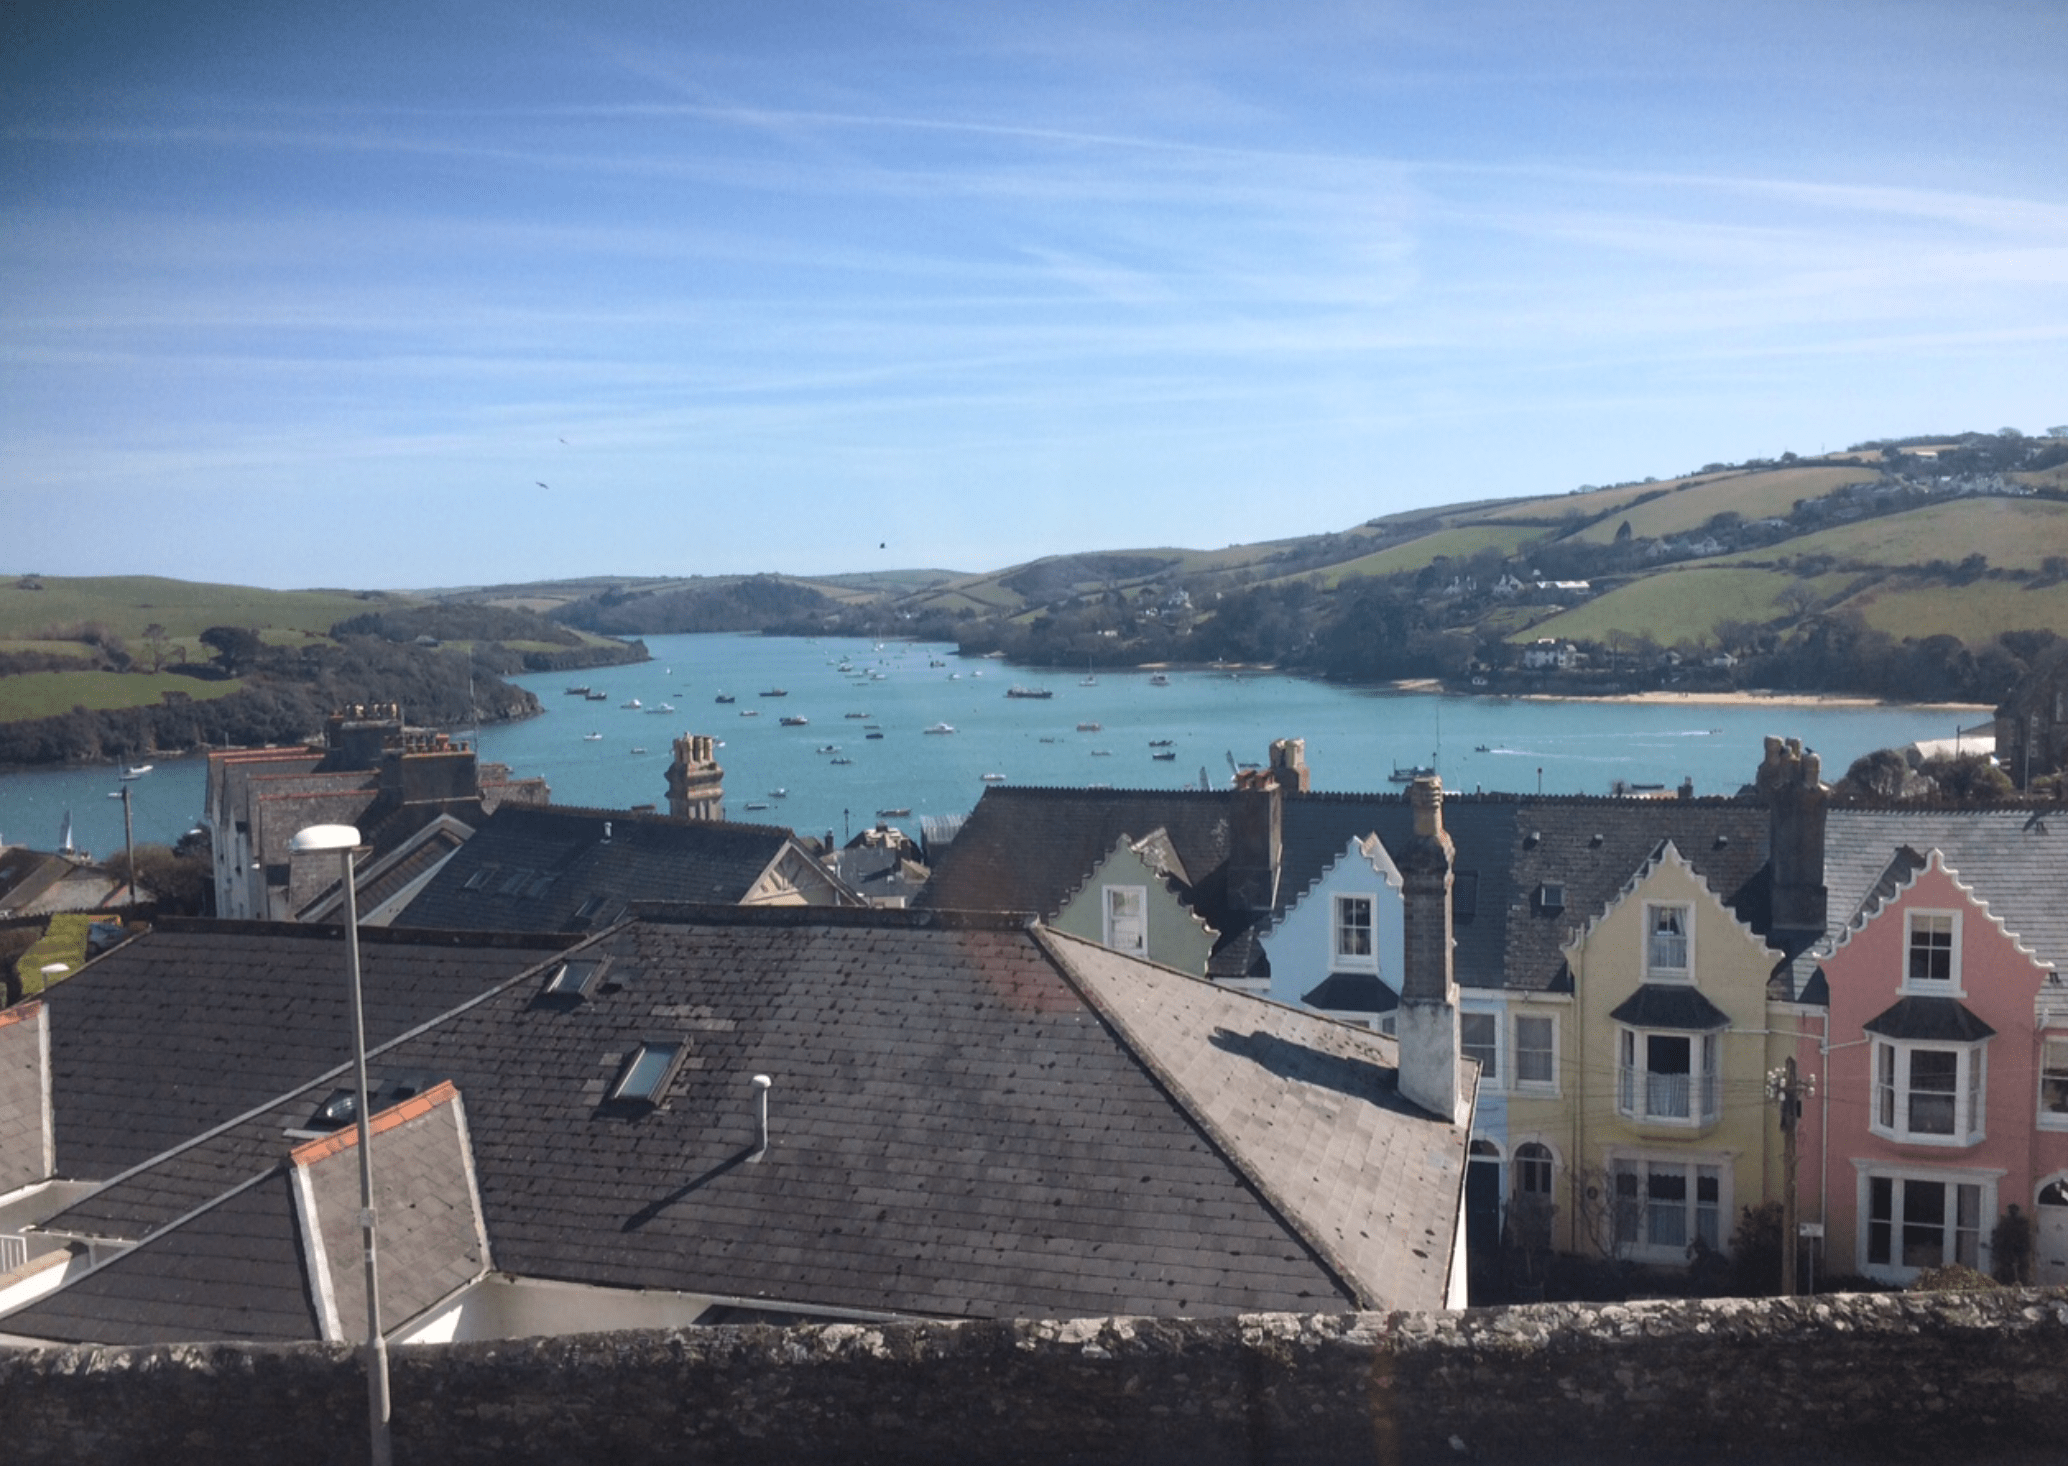 What a view of Salcombe Estuary to wake up to